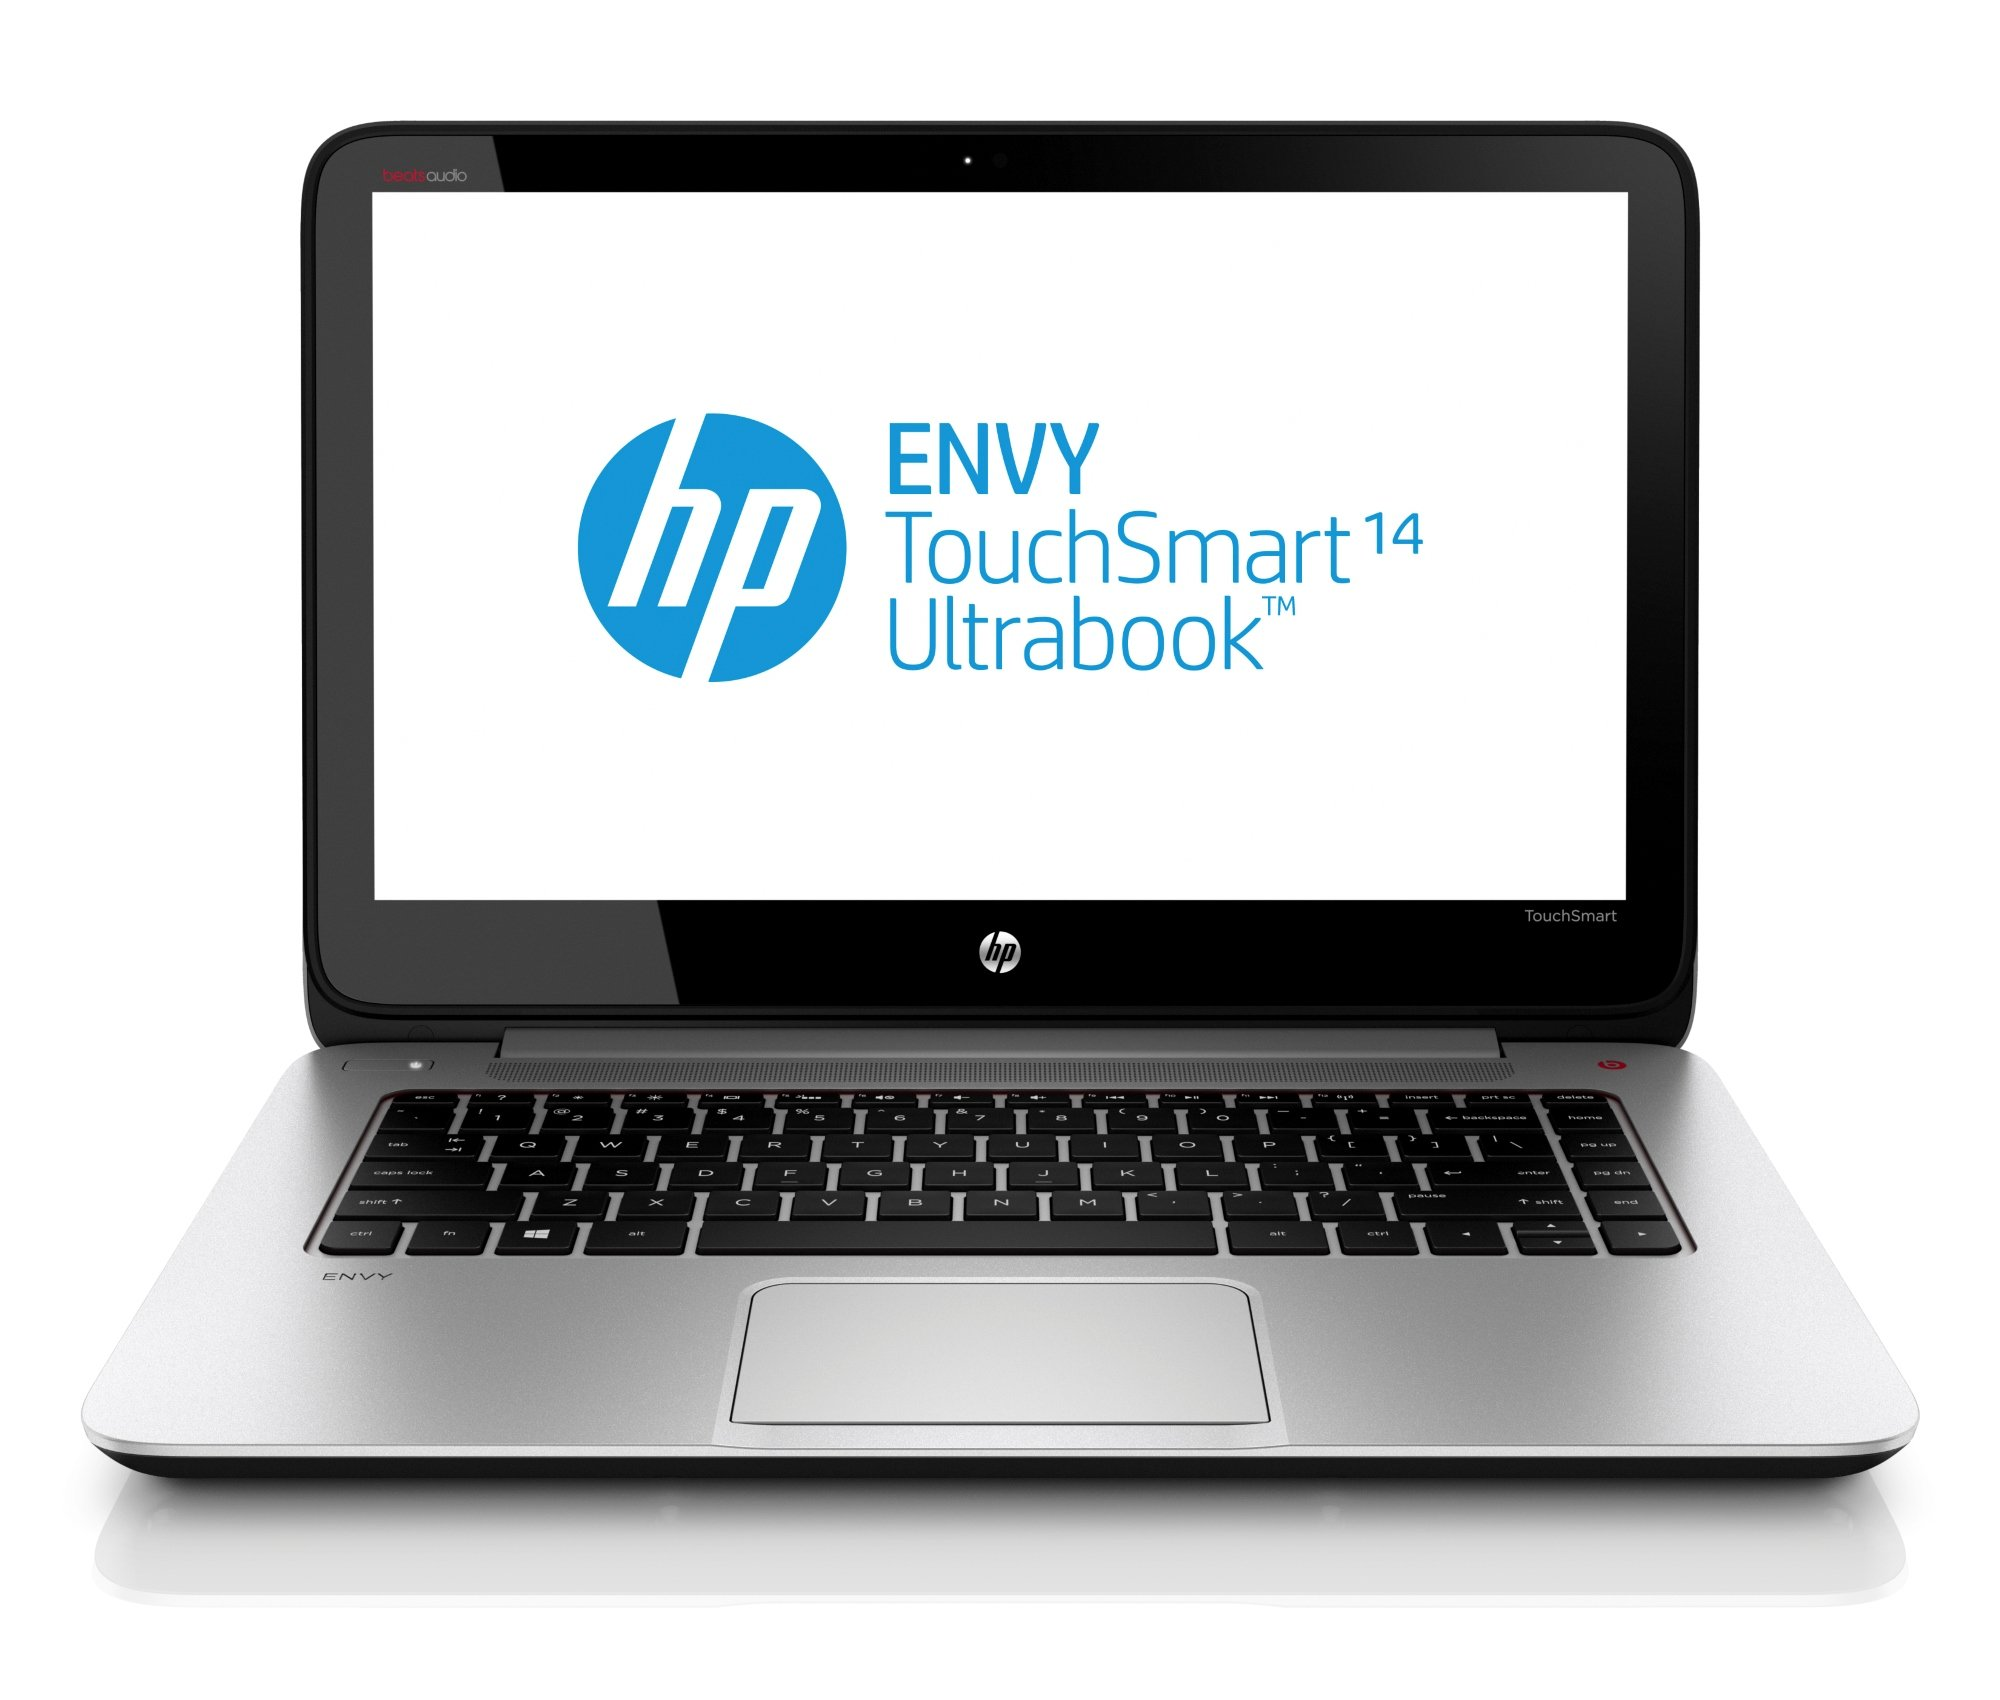 Galleon - HP Envy 14-k120us TouchSmart Ultrabook With Beats